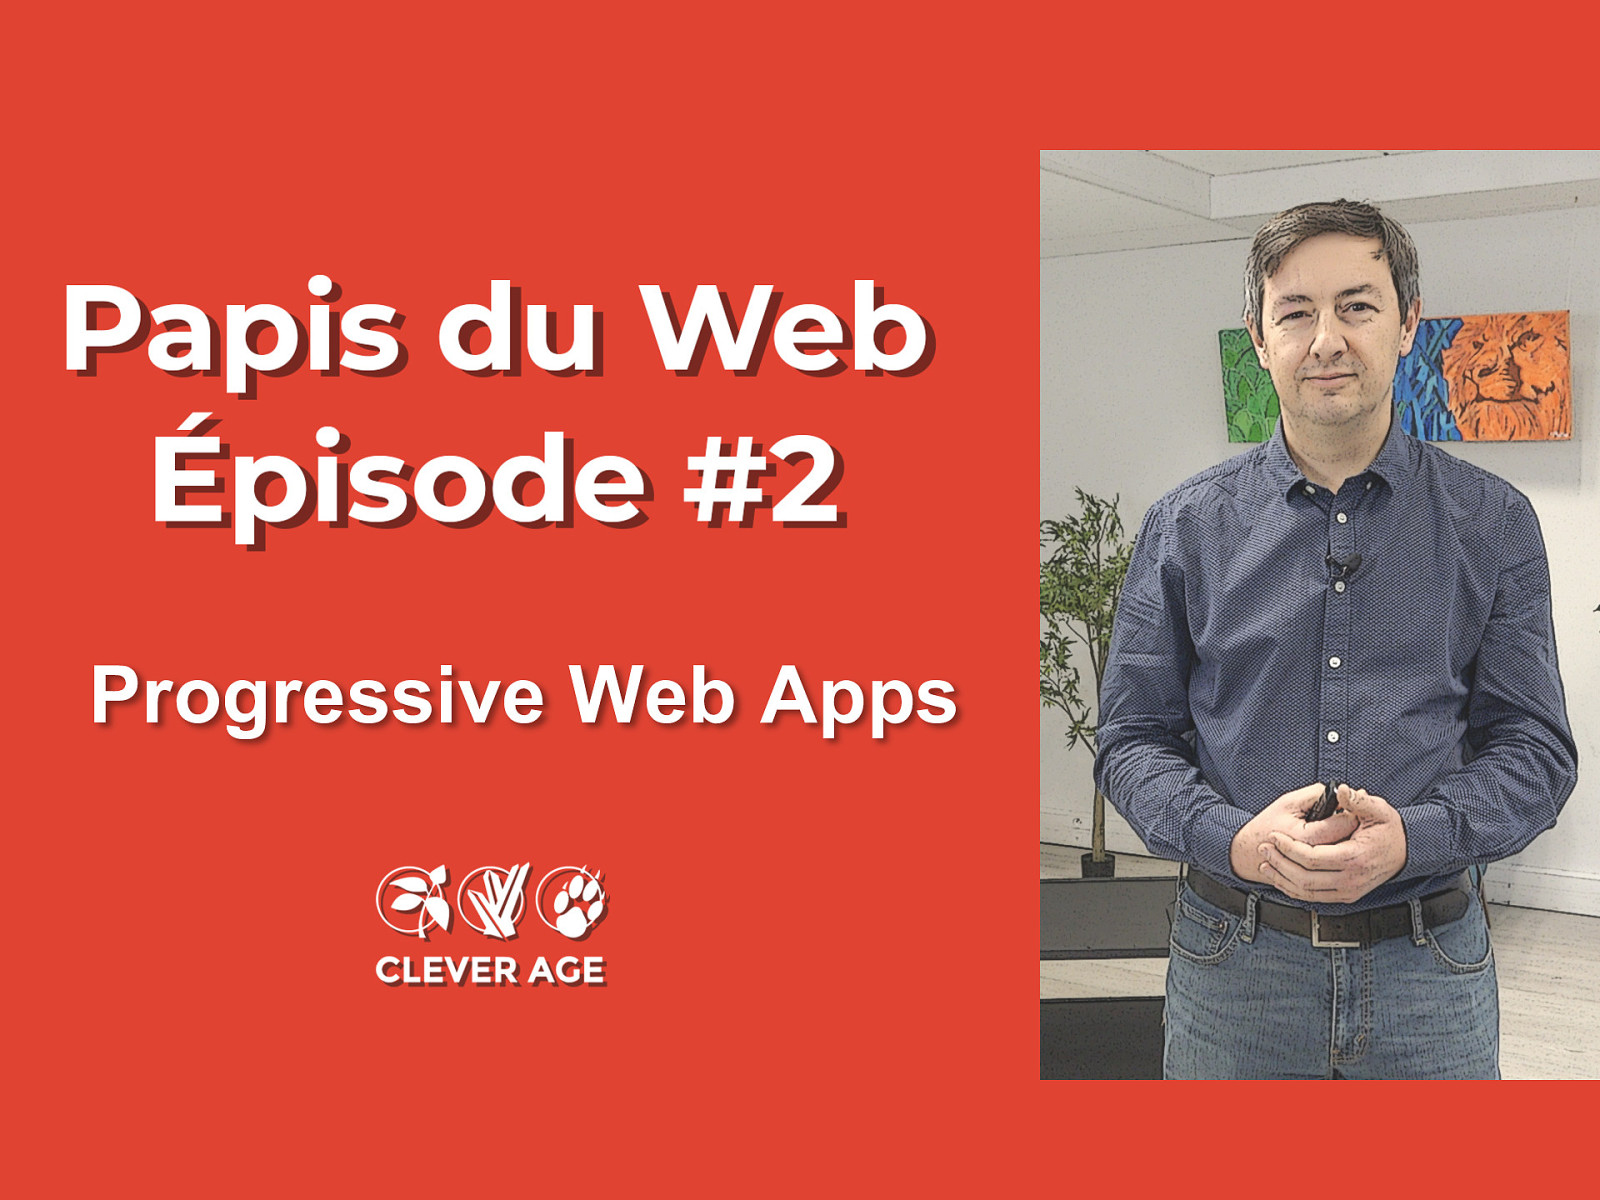 Les Progressive Web Apps (PWA)